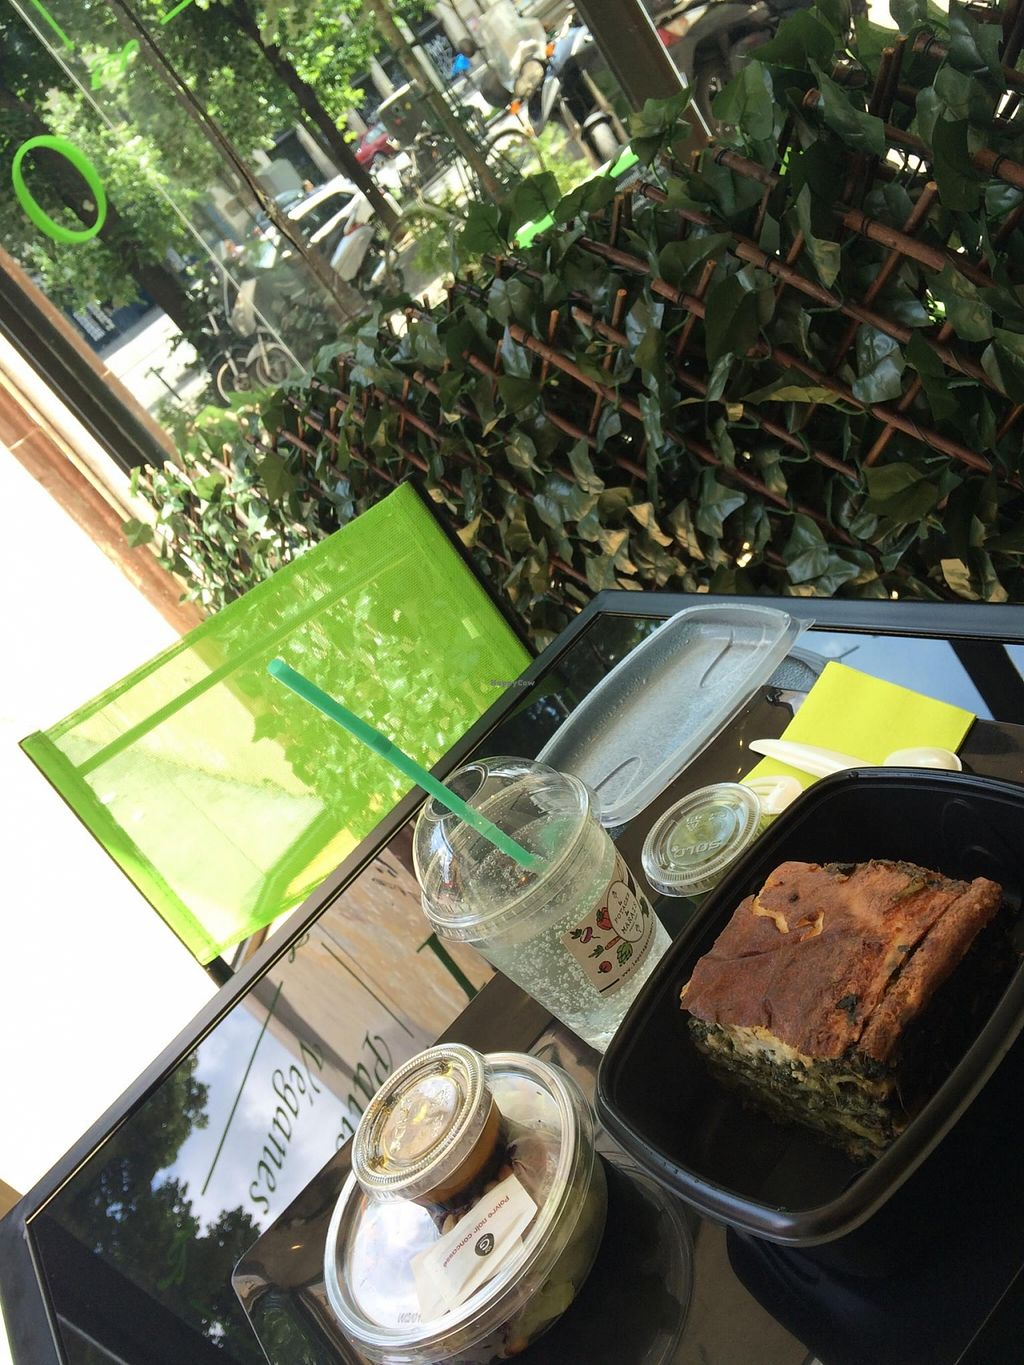 "Photo of CLOSED: Le Potager du Marais - Take Away  by <a href=""/members/profile/LauraMay"">LauraMay</a> <br/>A menu: lasagna, salad mix and lemonade <br/> May 26, 2016  - <a href='/contact/abuse/image/73369/150886'>Report</a>"